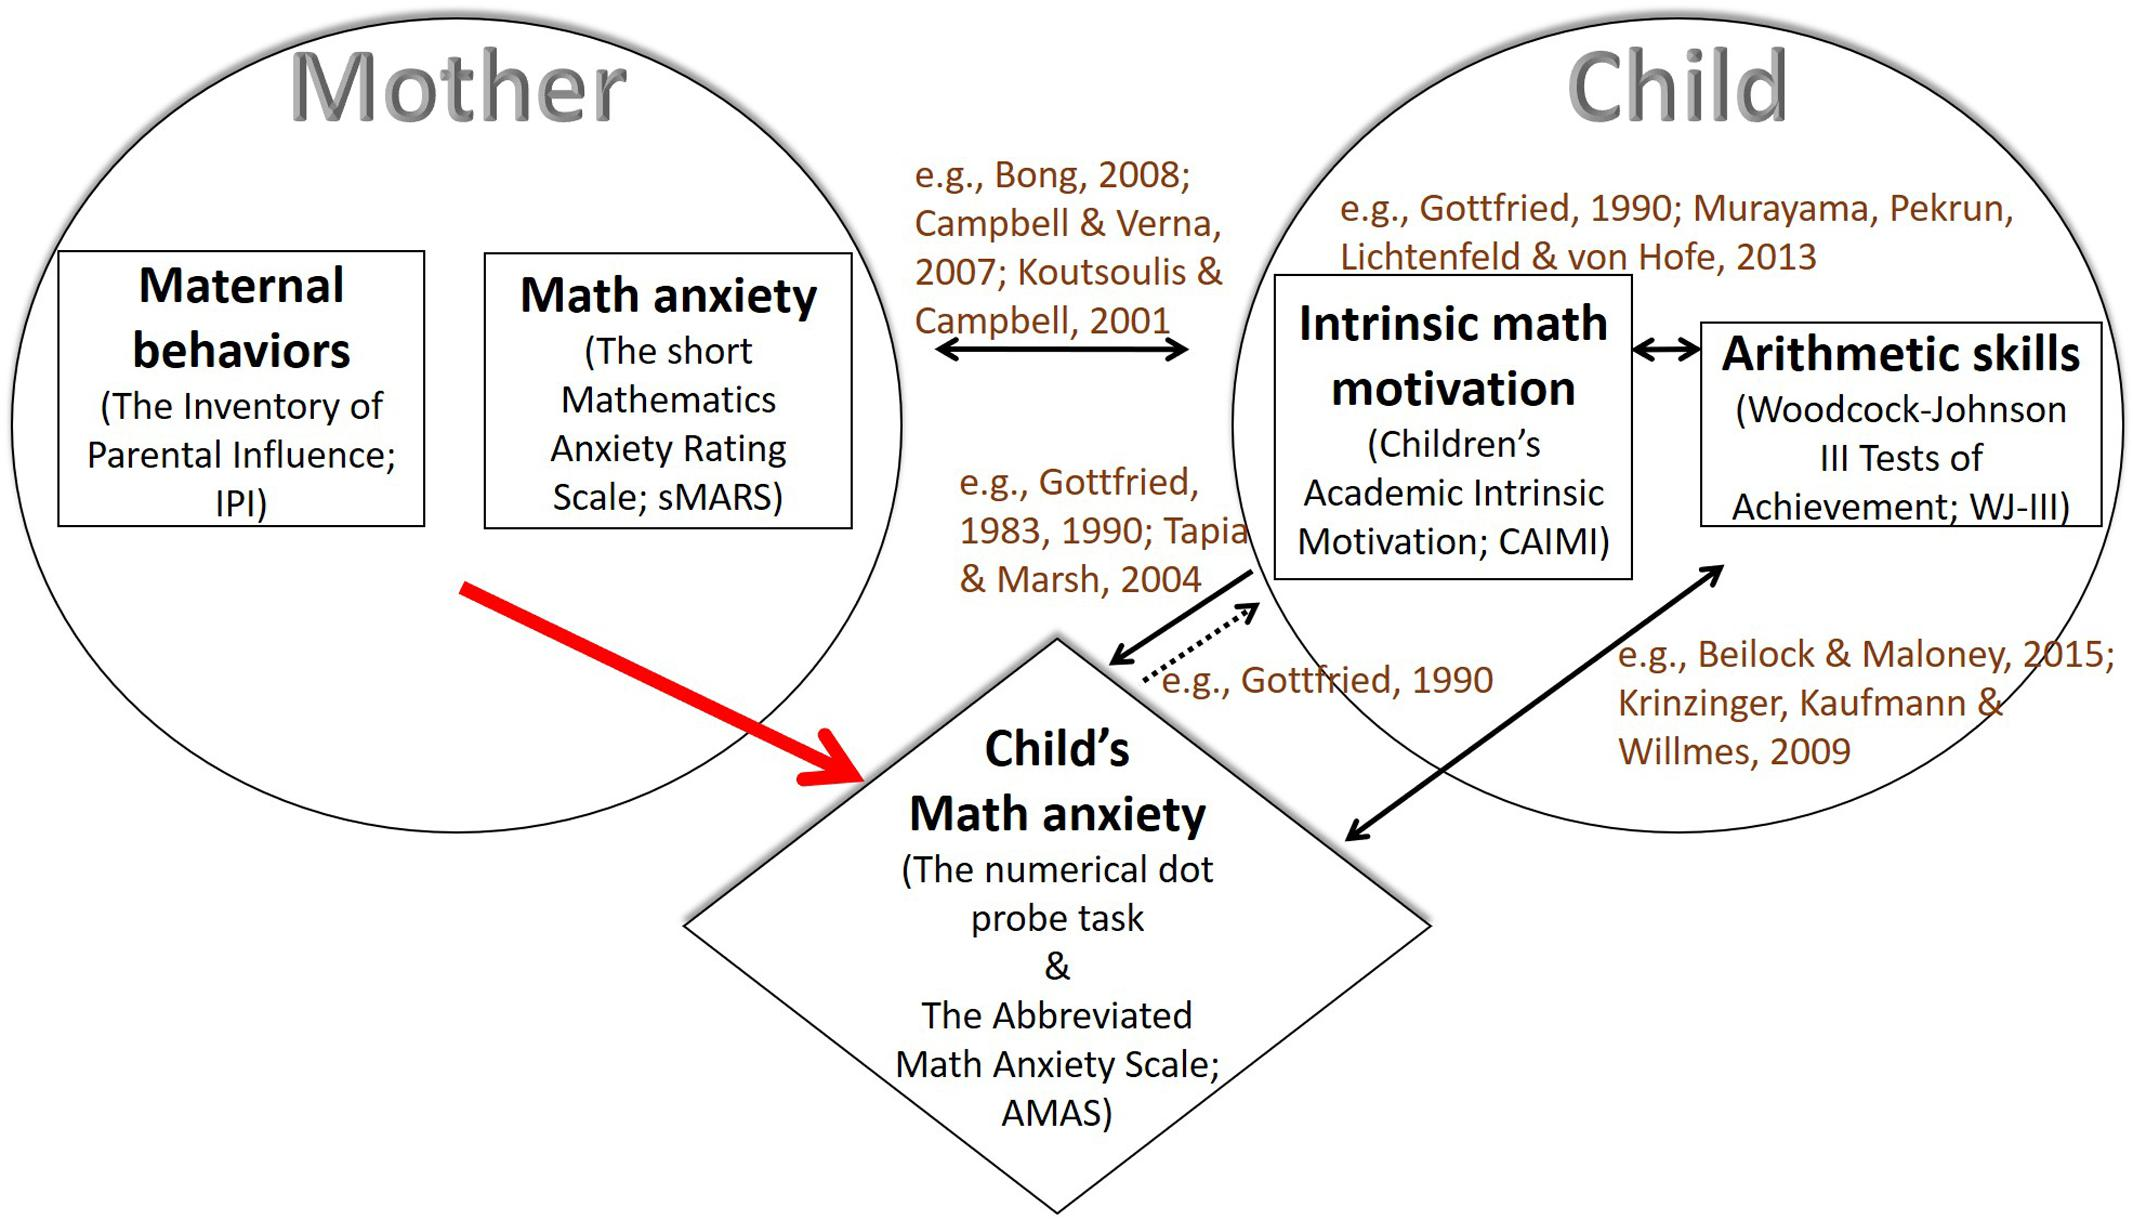 Frontiers | Mothers, Intrinsic Math Motivation, Arithmetic Skills ...